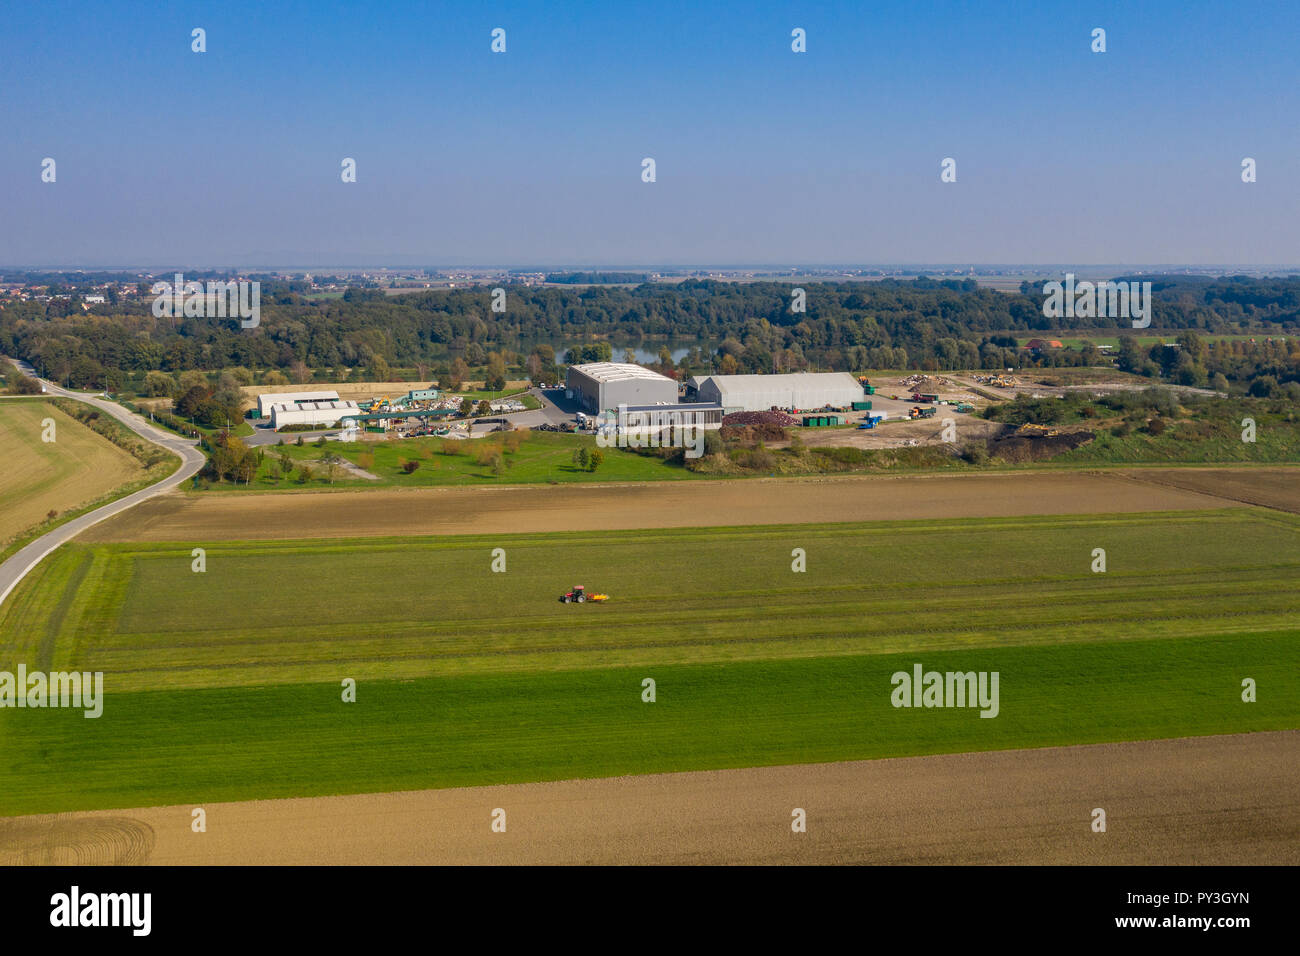 Aerial view on Waste and Recycling Centre in rural landscape, household waste displosal and treatment, ecology and earth preservation - Stock Image